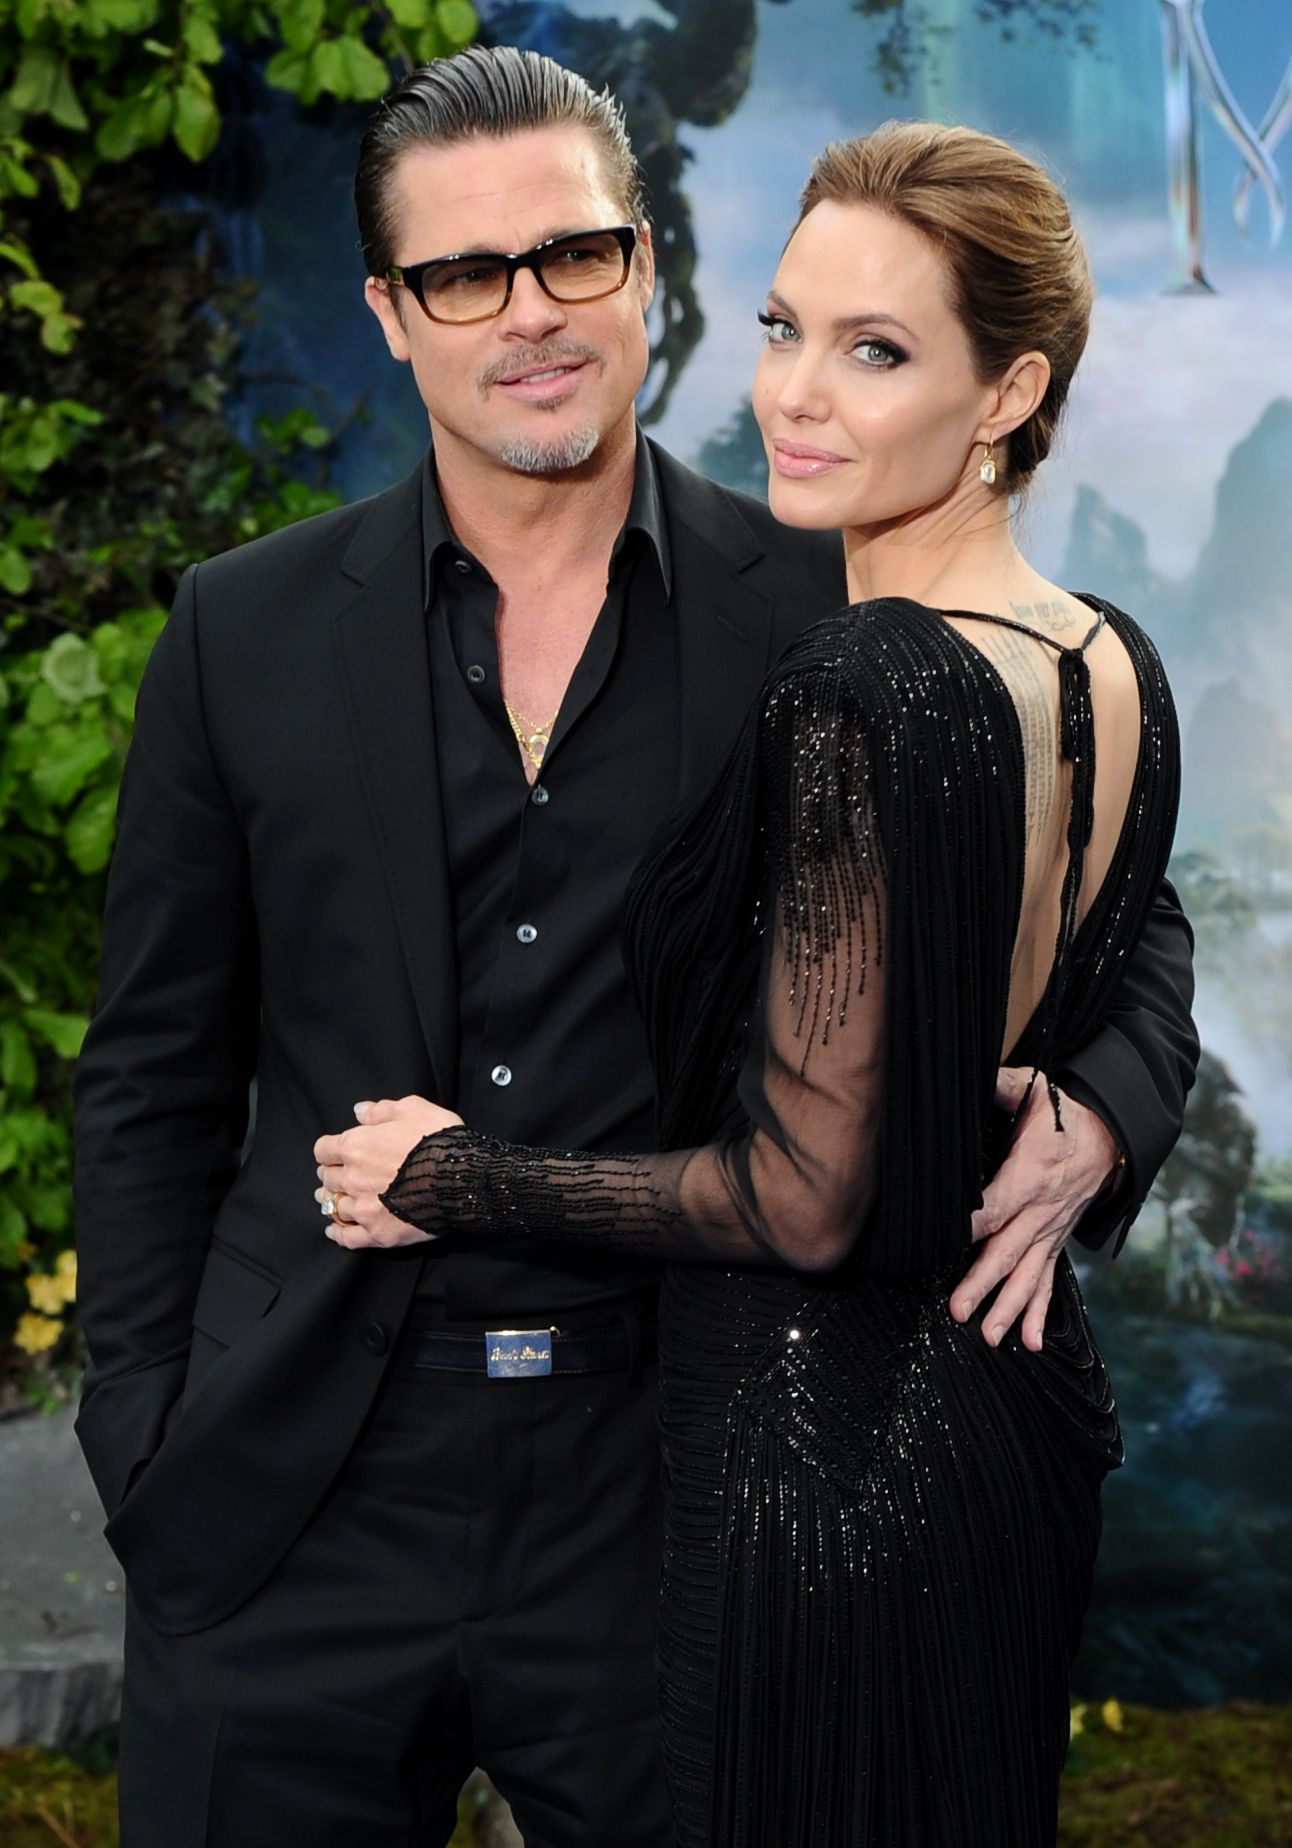 Brad Pitt and Angelina Jolie in May 2014